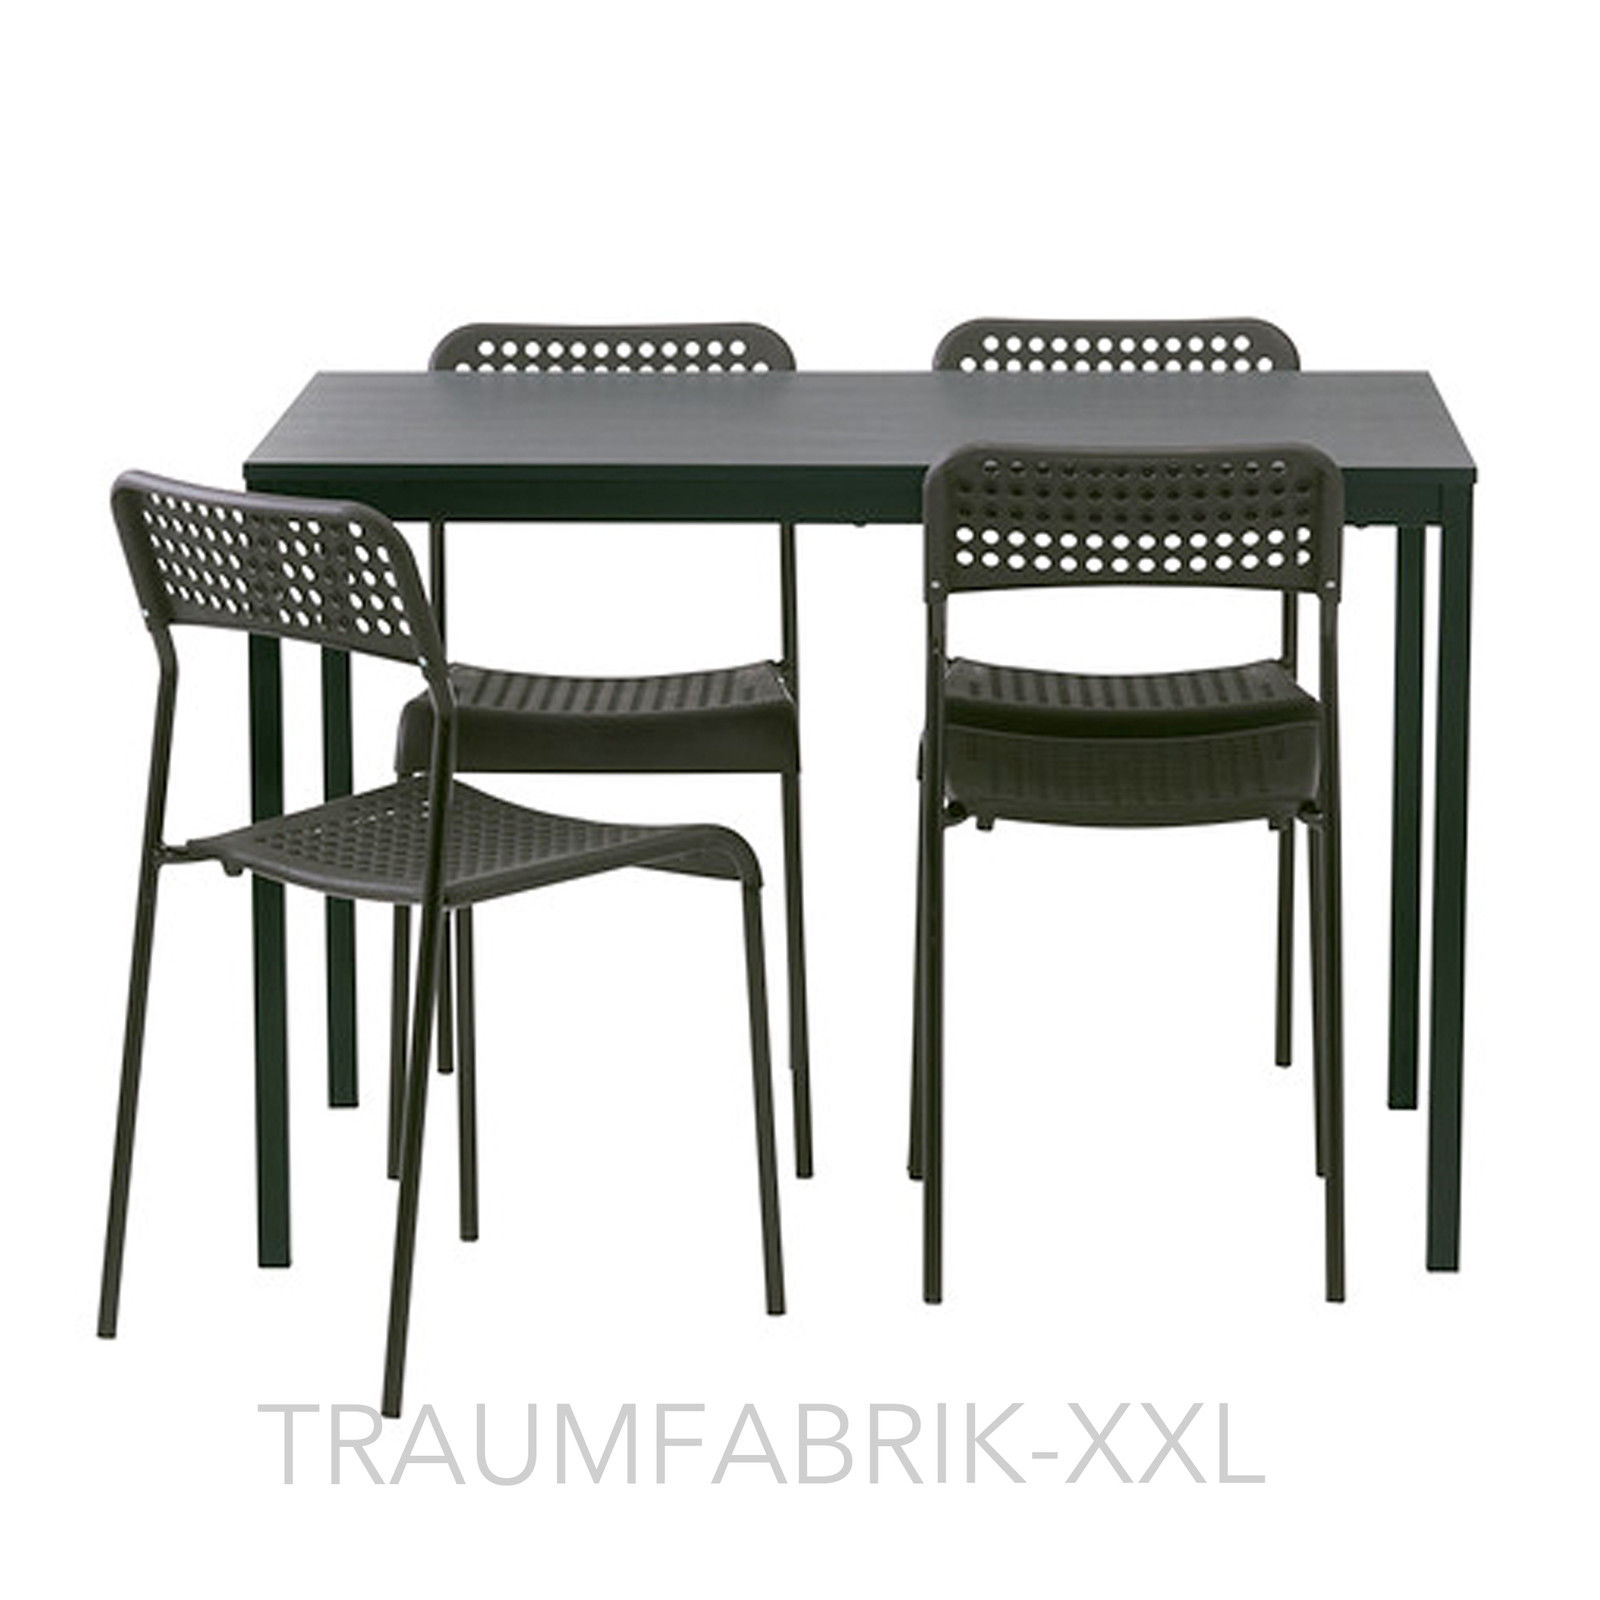 ikea essgruppe tischgruppe esszimmer esszimmergarnitur tisch st hle schwarz neu traumfabrik xxl. Black Bedroom Furniture Sets. Home Design Ideas